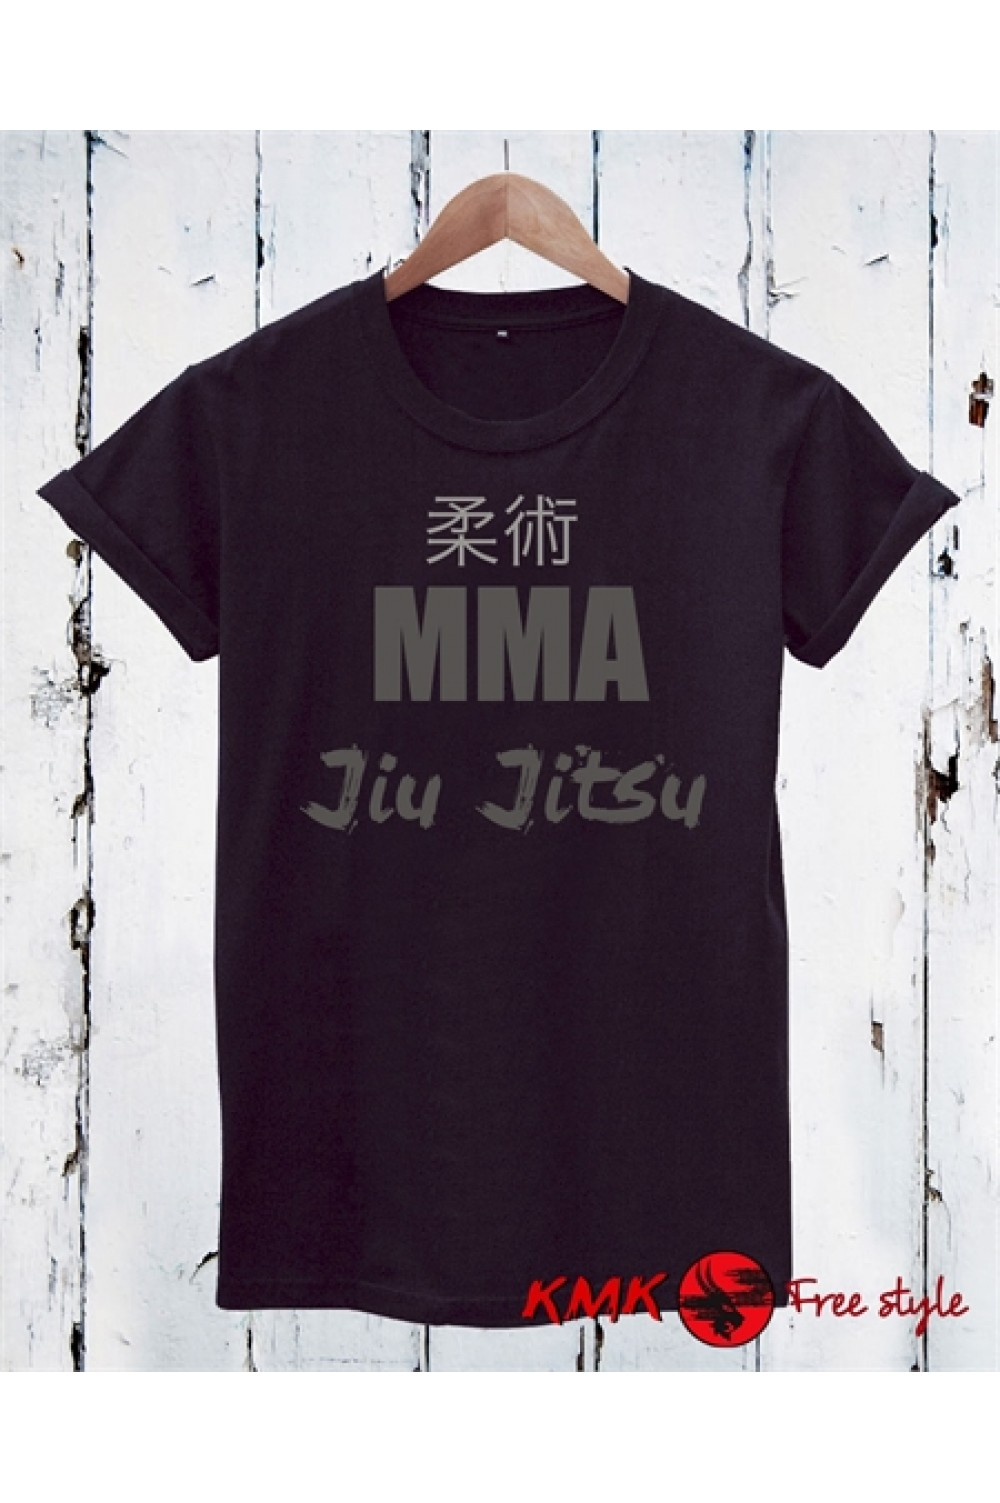 MMA Printed T shirt | Jiu Jitsu Tanktop | Motivation Shirt